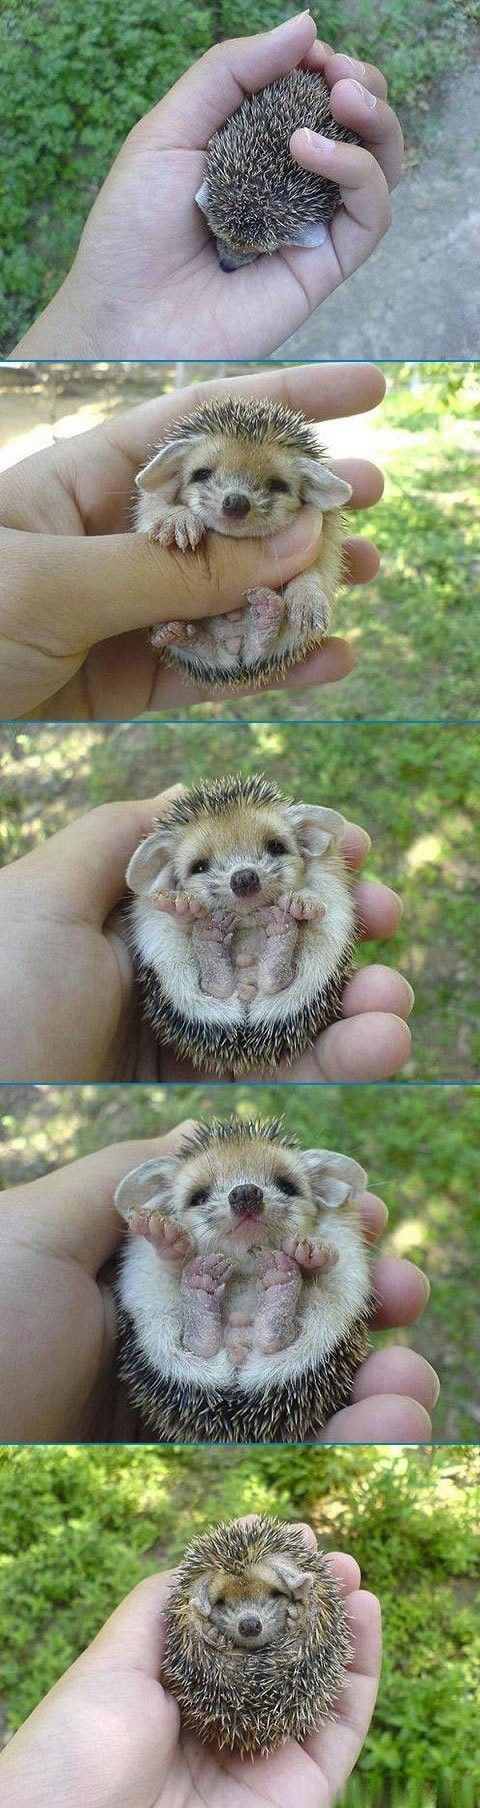 Hedgehogs are just prickly little balls of cute. #cuddlypet